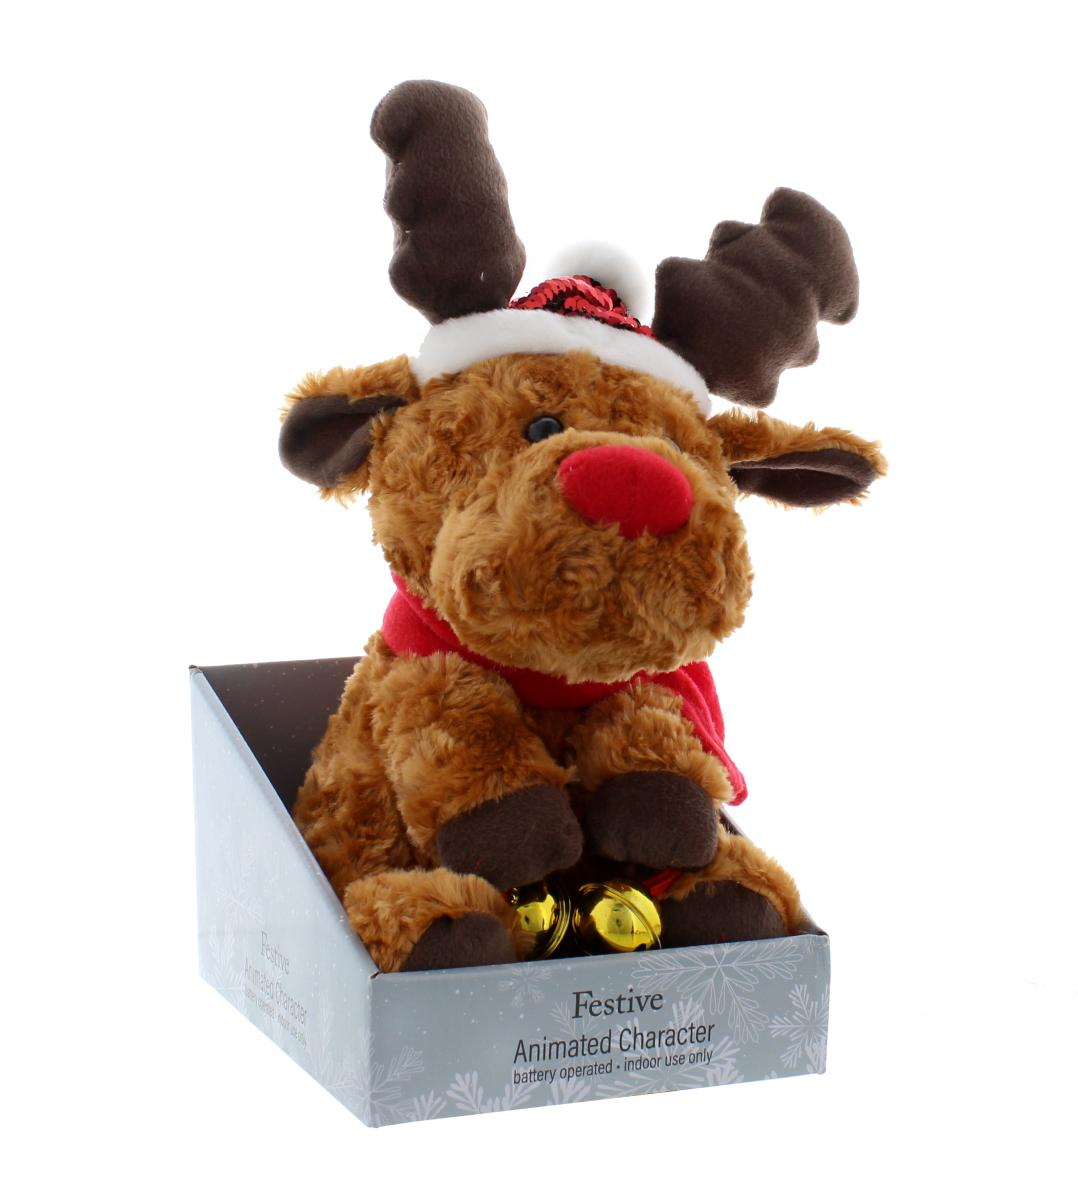 Animated Reindeer with Jingle Bells – Now Only £15.00